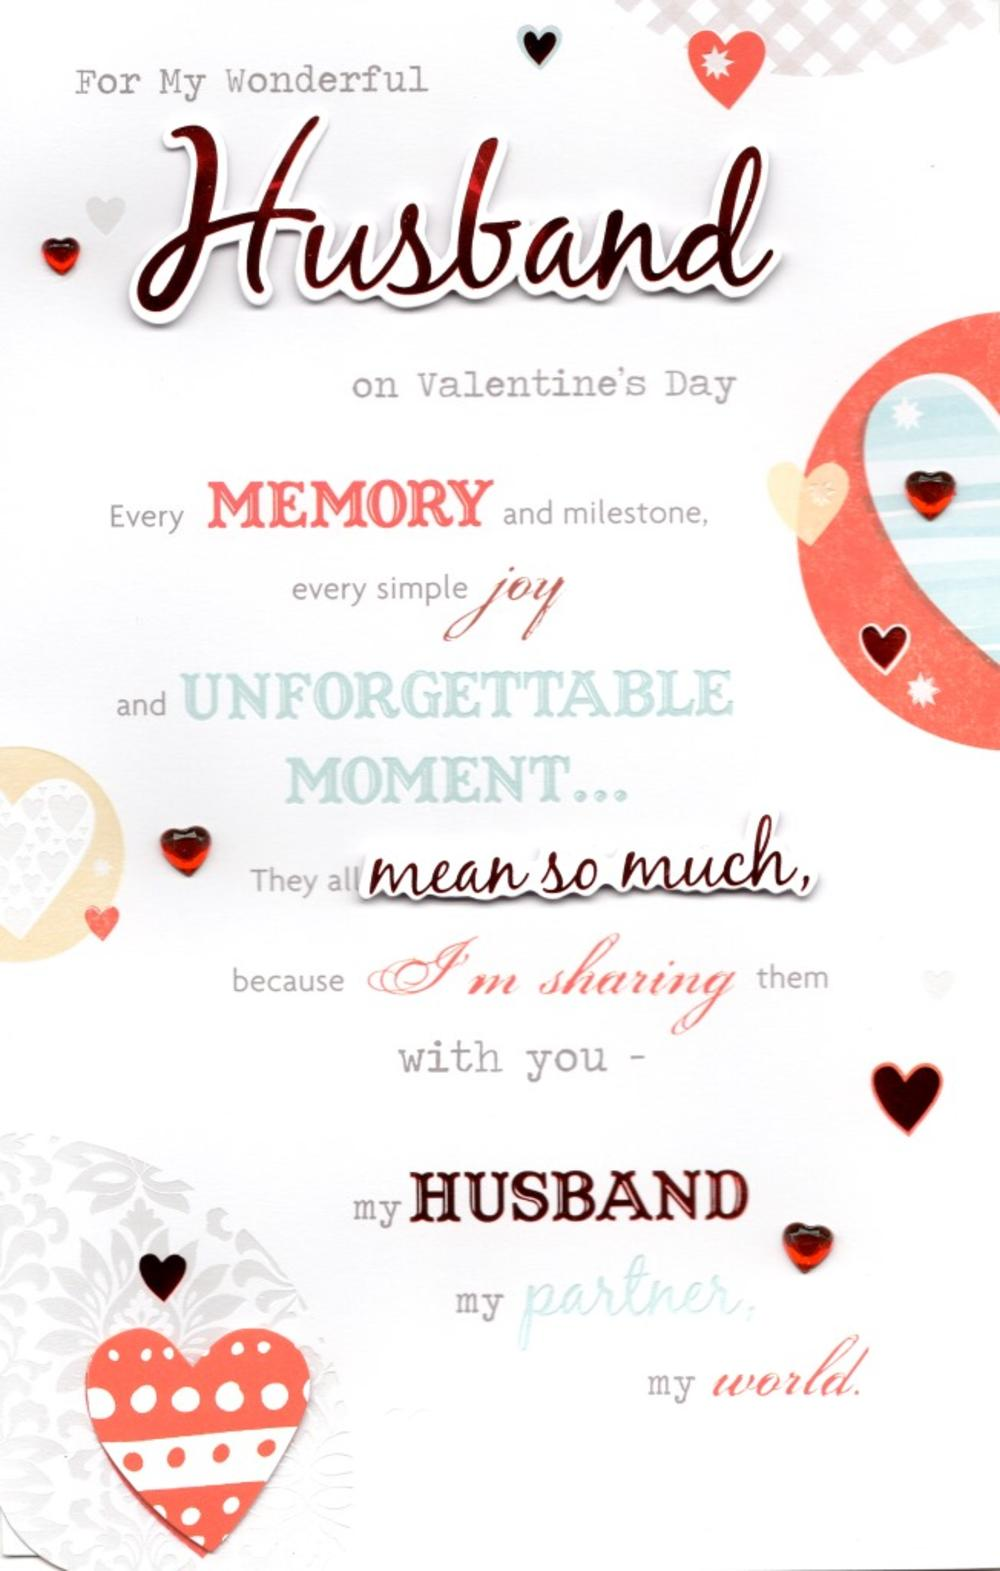 Husband Valentines Day Greeting Card Cards Love Kates Online